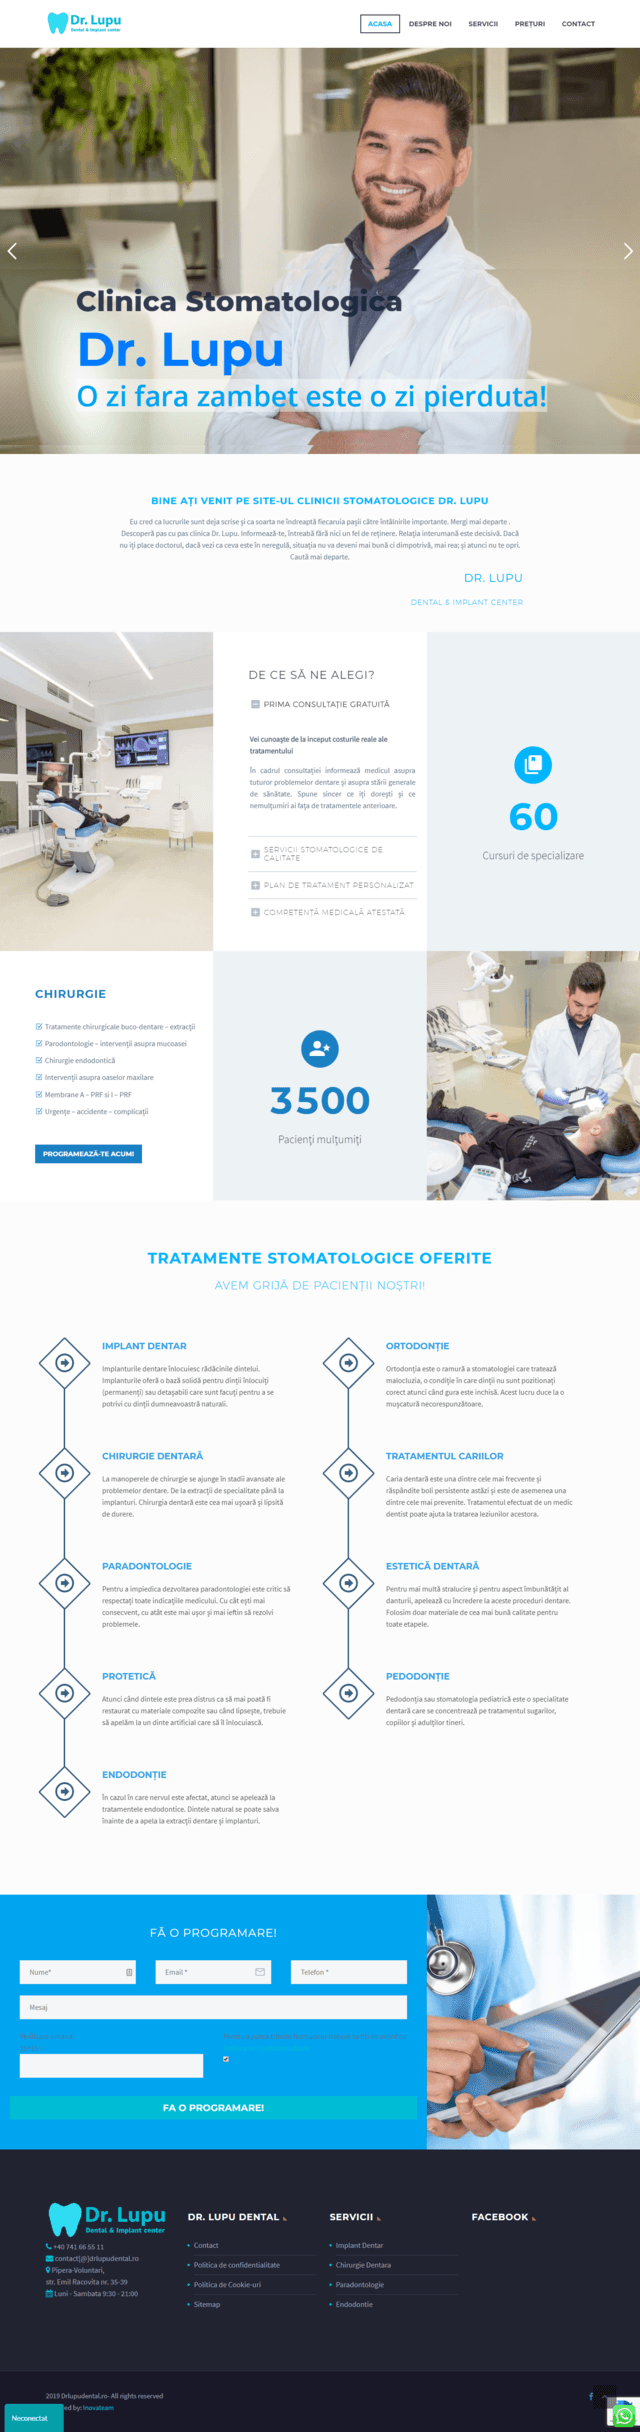 Inovateam web design - drlupudental